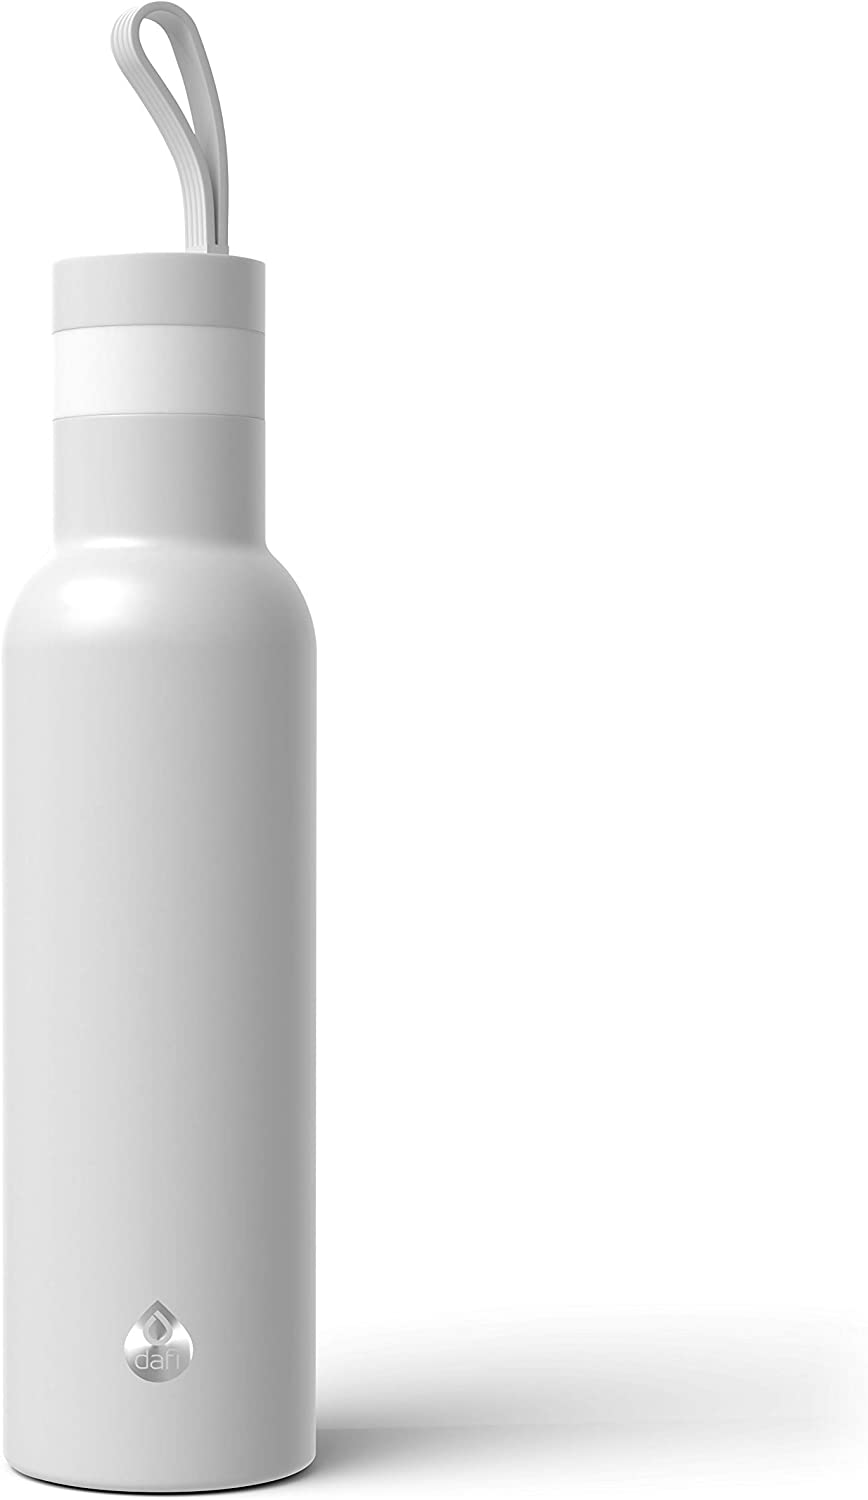 Dafi Double Wall Insulated Stainless Steel Thermal Bottle 17 fl oz Made in Europe BPA-Free (White)